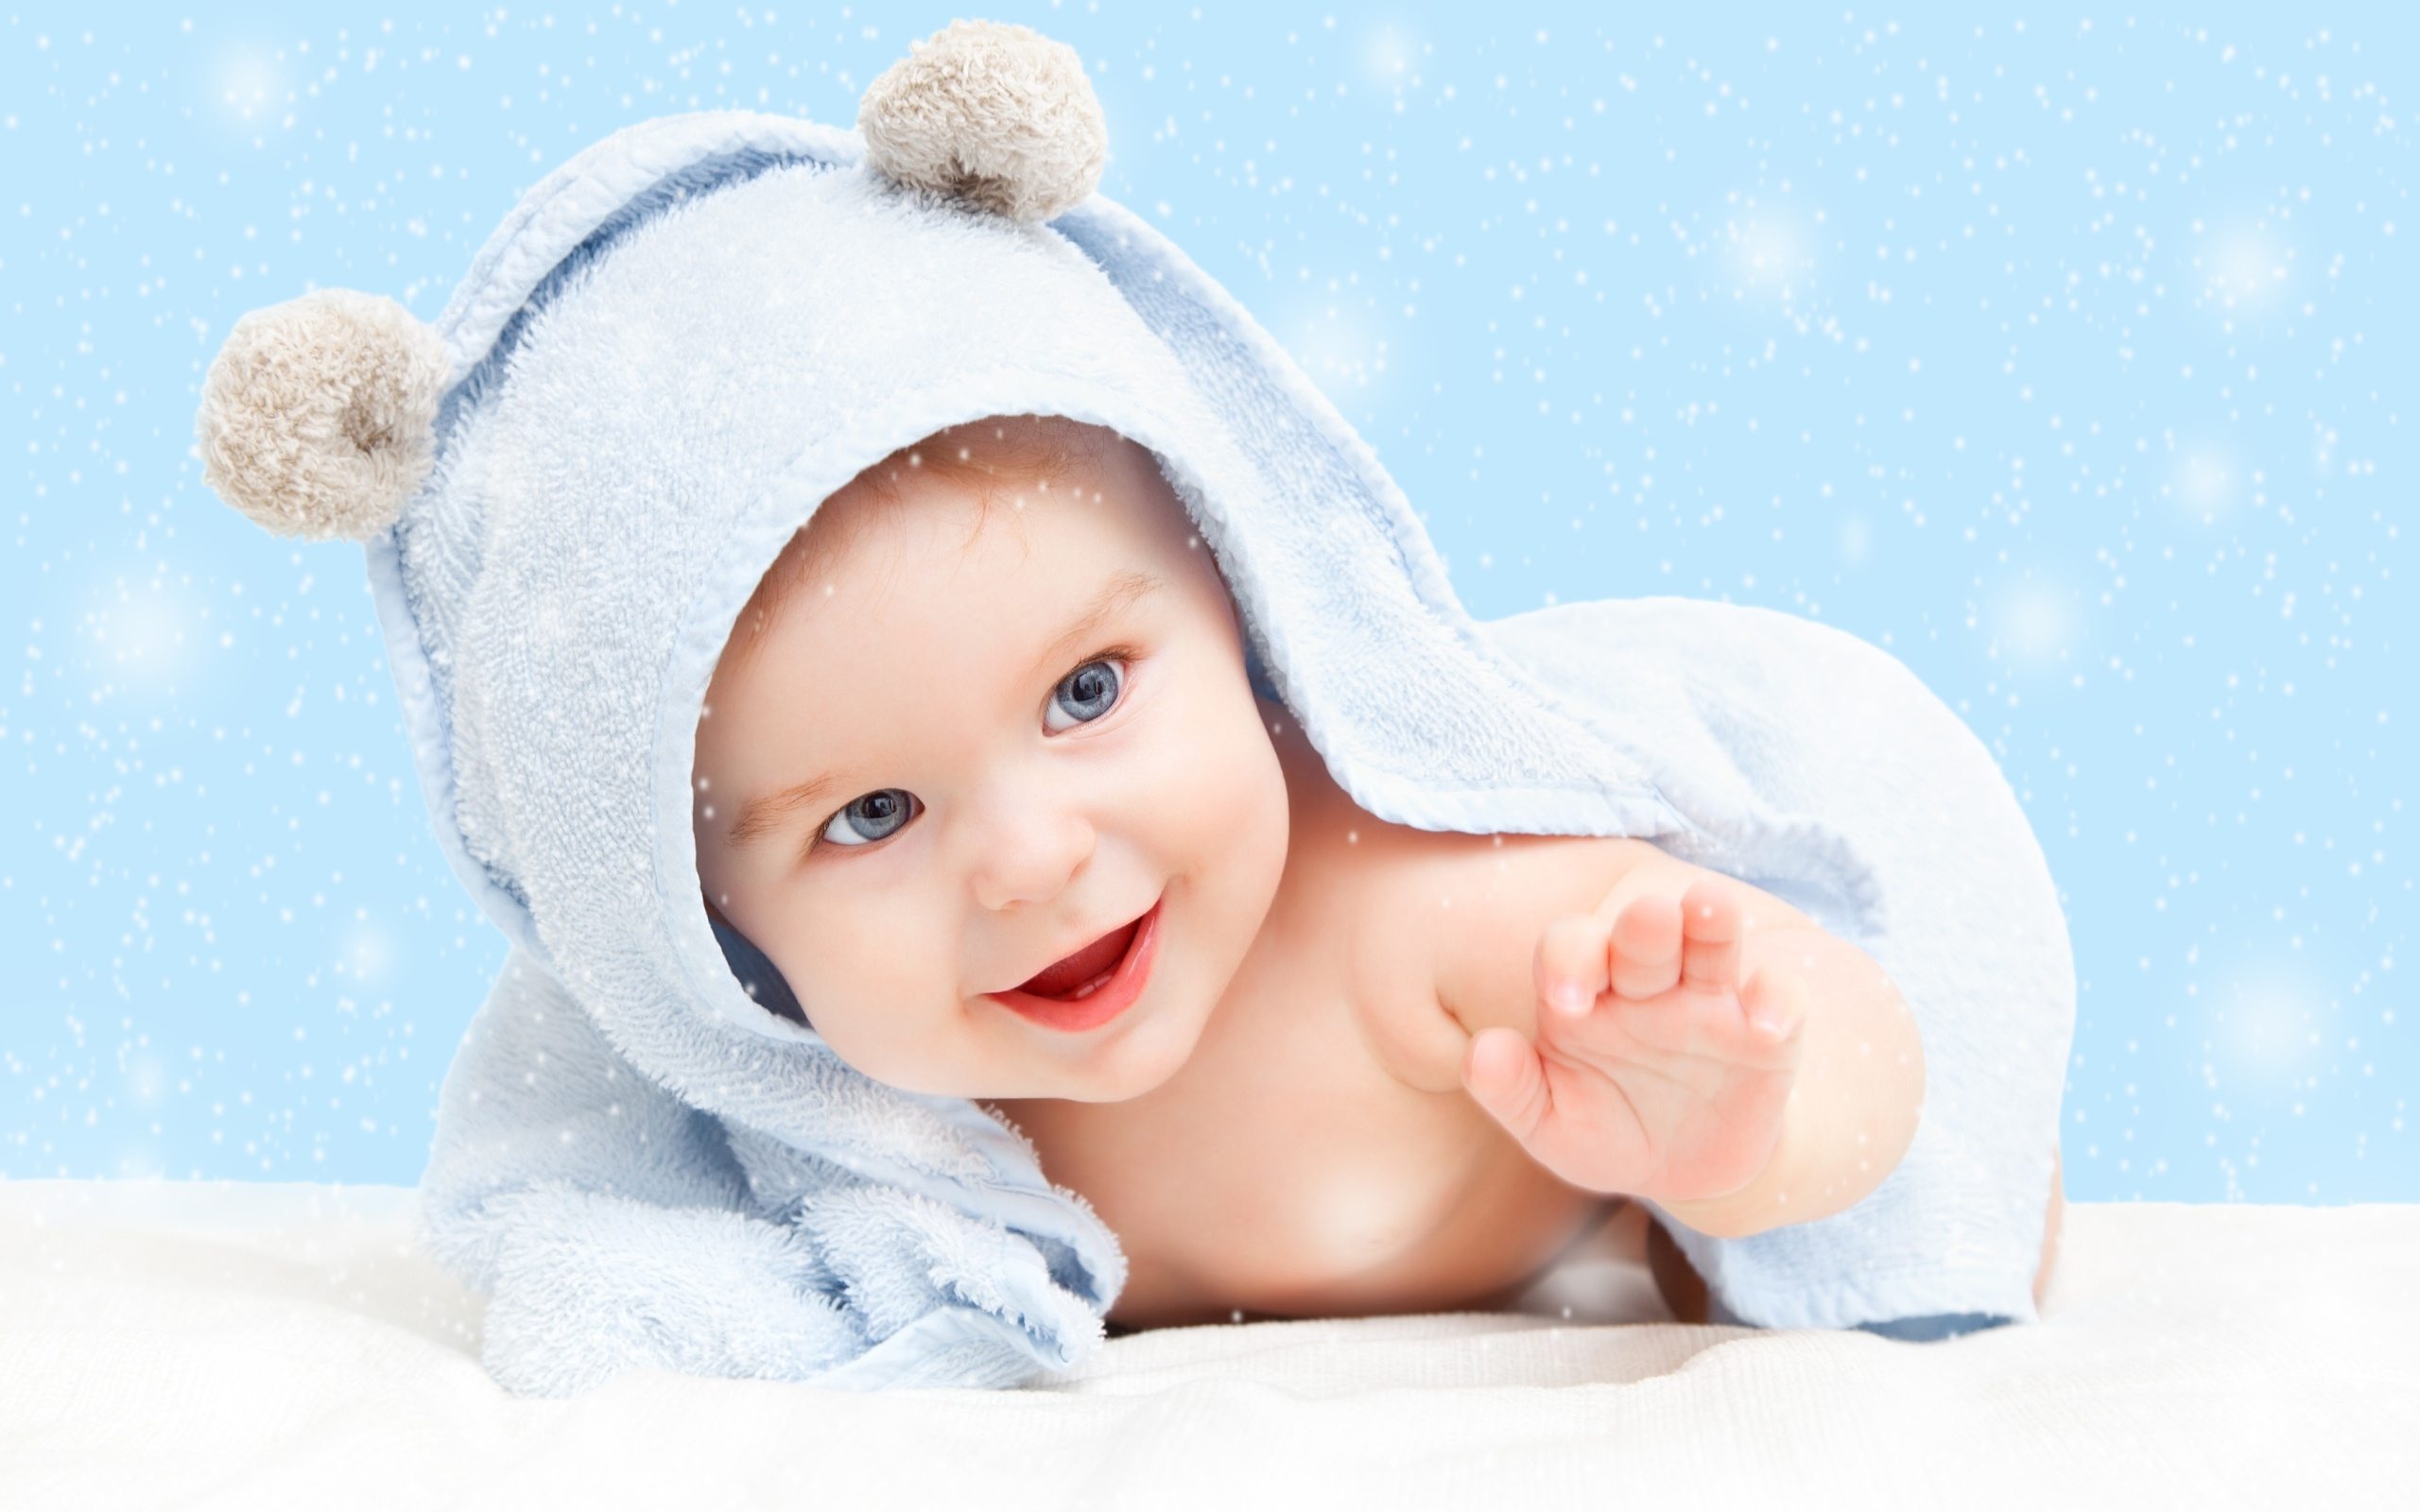 New Hd Wallpaper Girl Download New Babies Photos Wallpapers Group 82